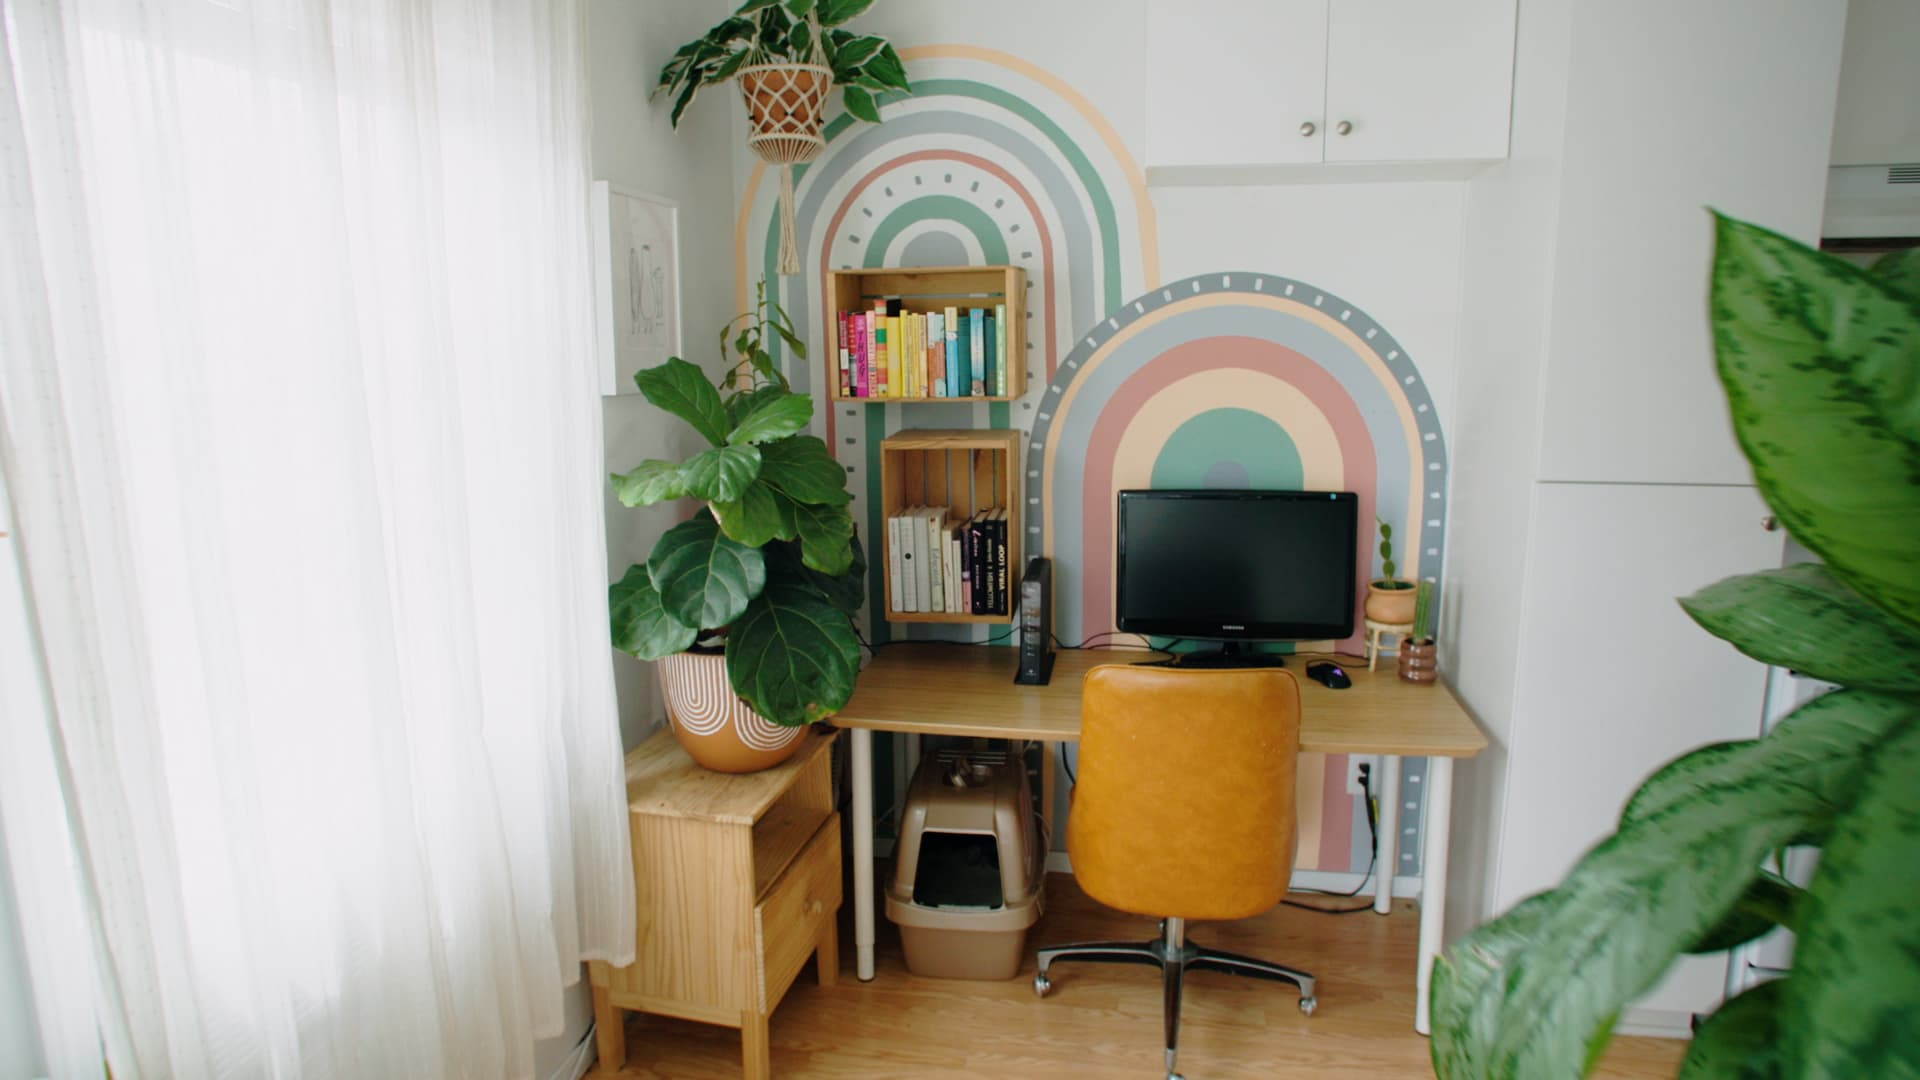 To save money, Hinds buys smaller paint samples to create murals on her walls.